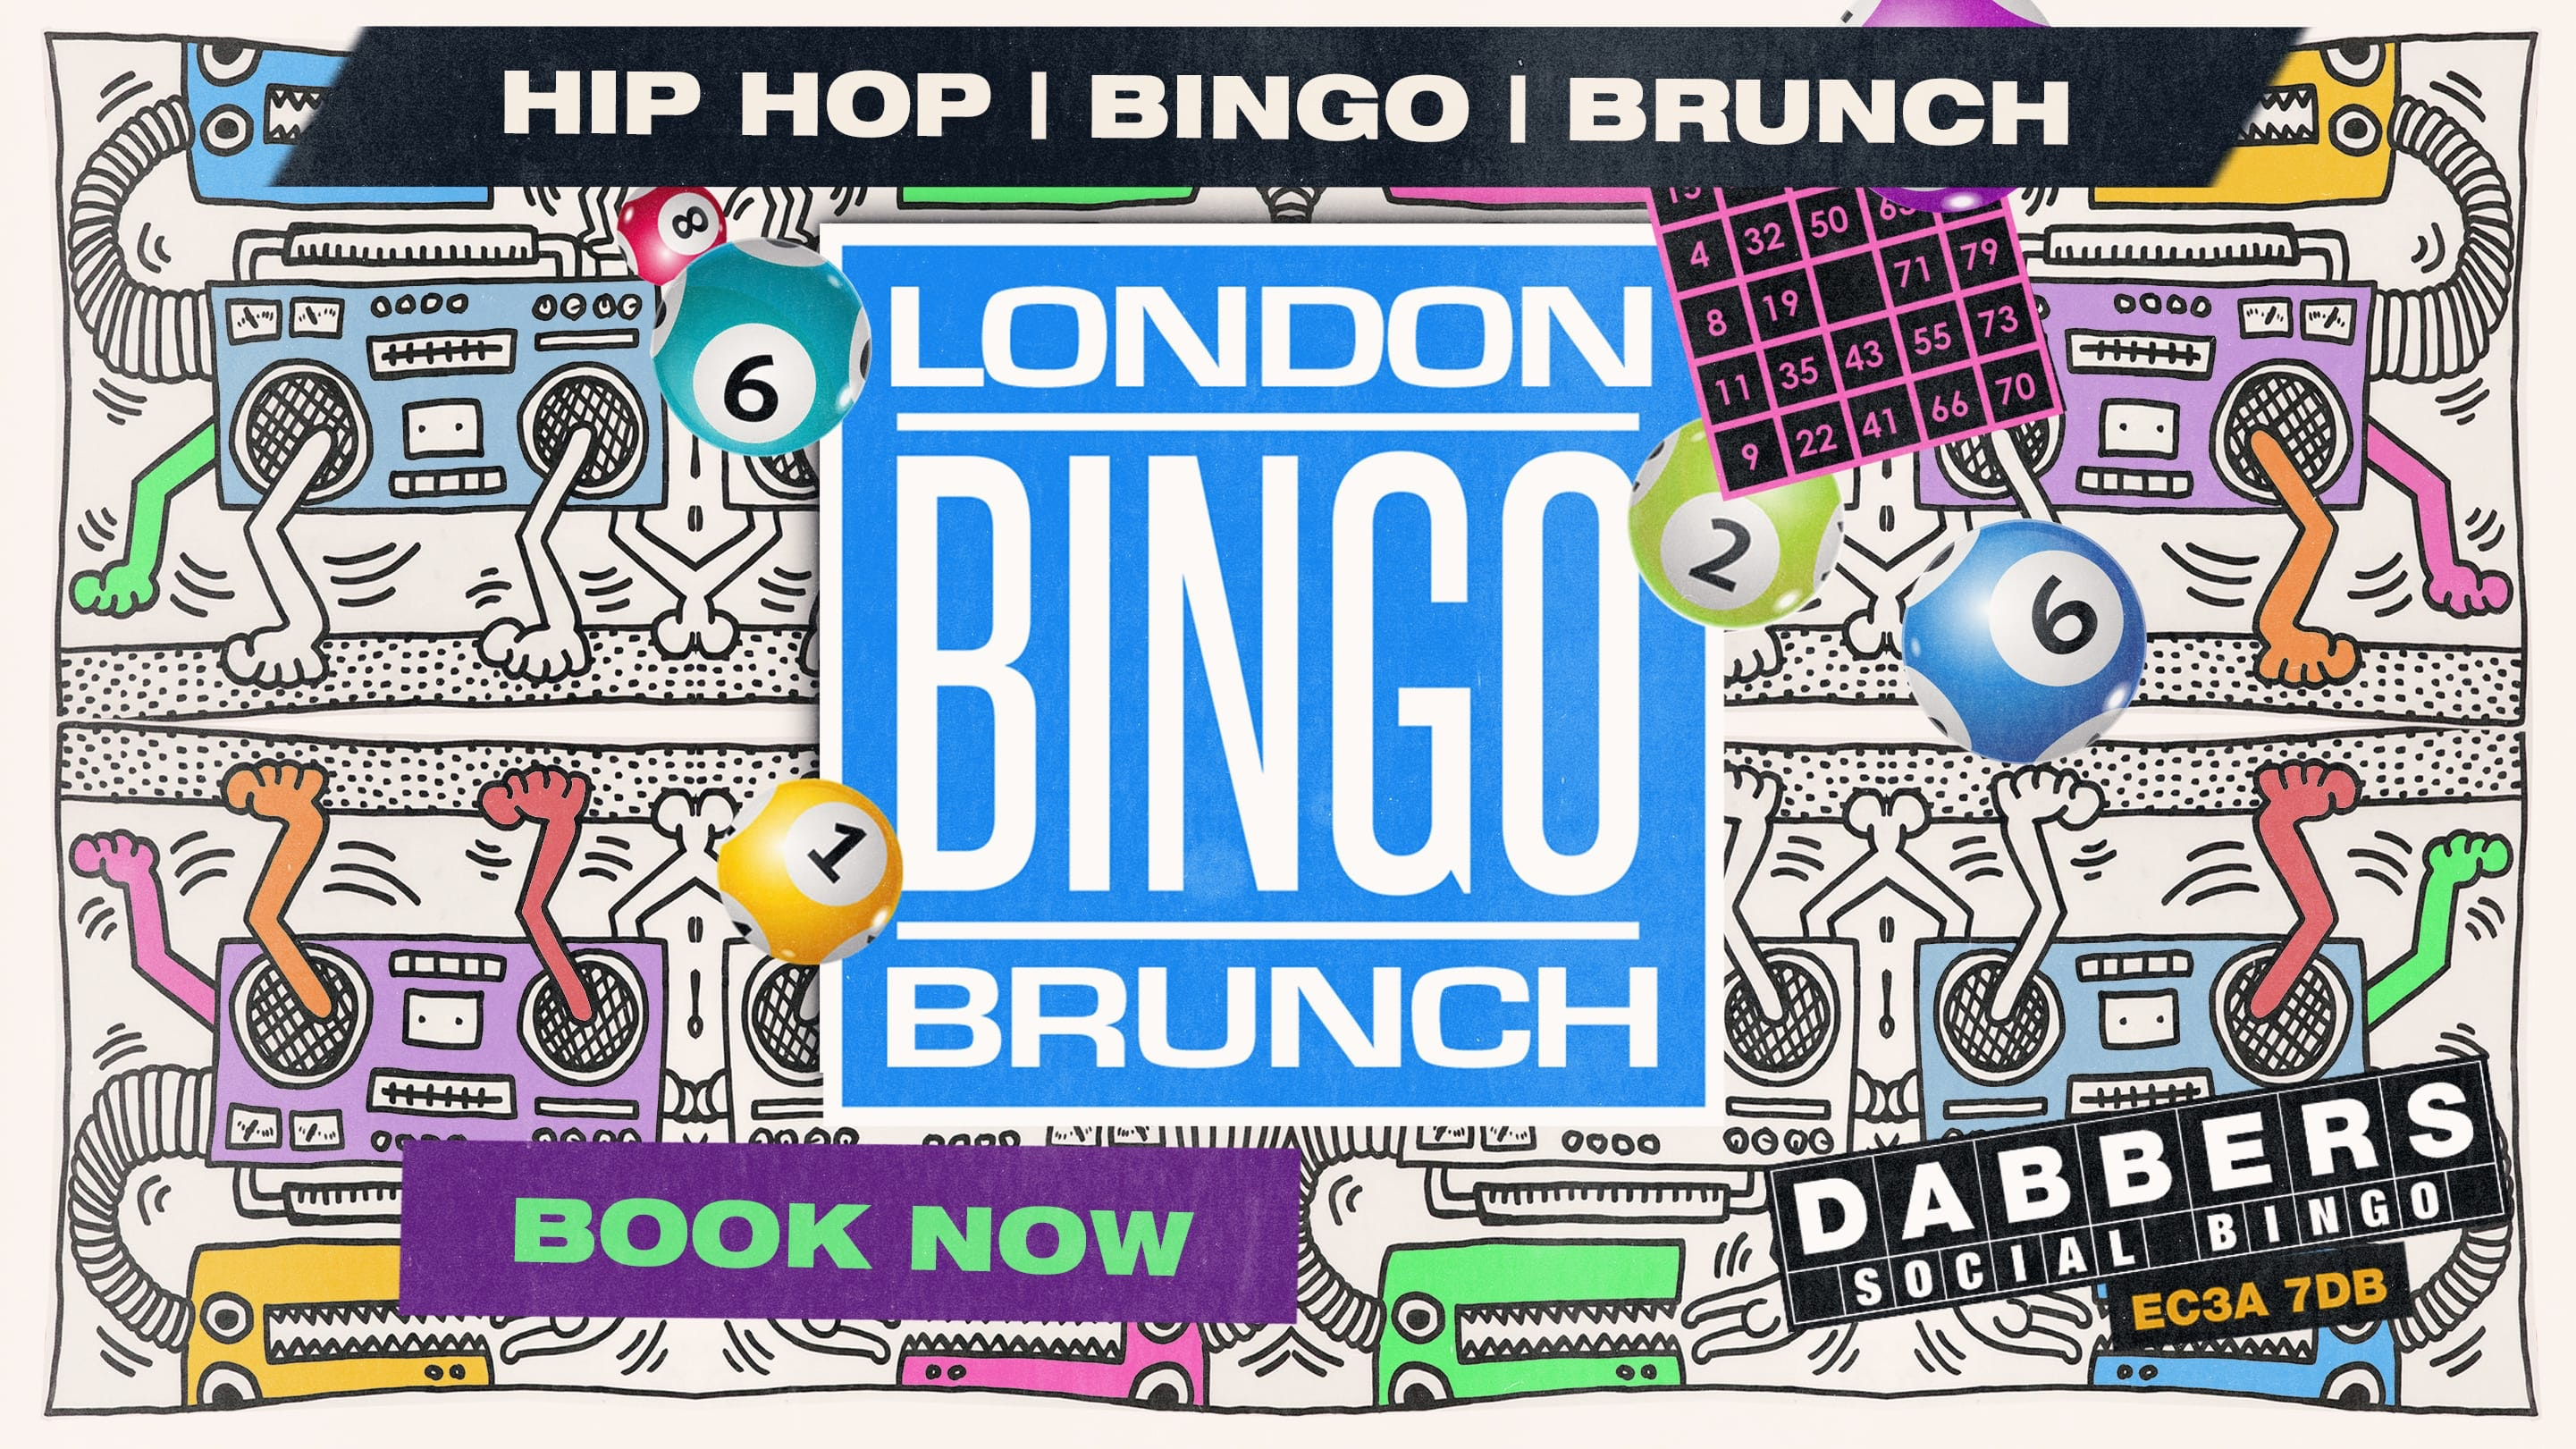 London Bingo Brunch: 4th July All American Hip Hip Relaunch Party